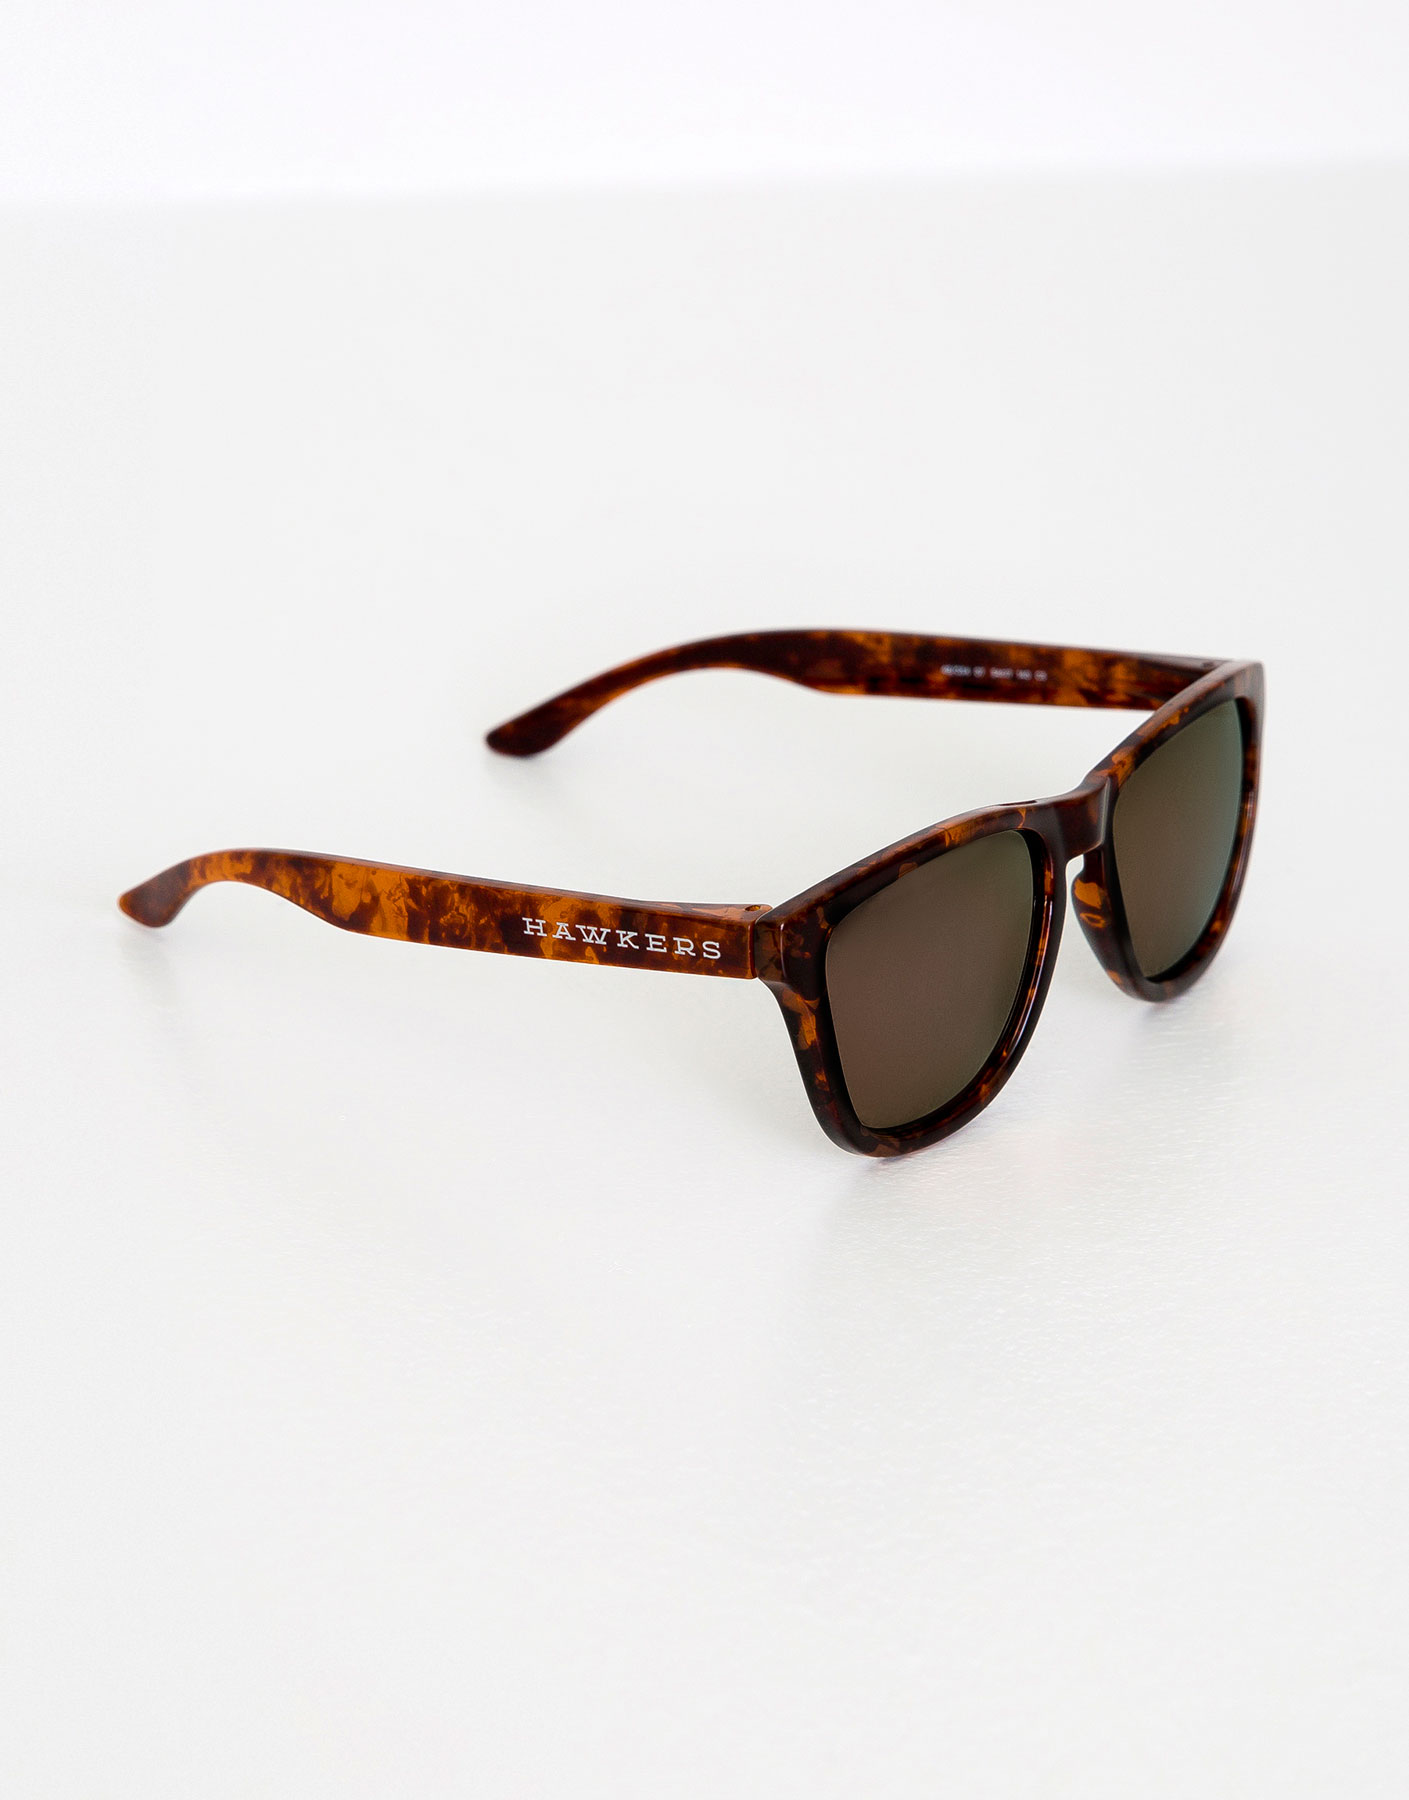 Hawkers carey dark one sunglasses